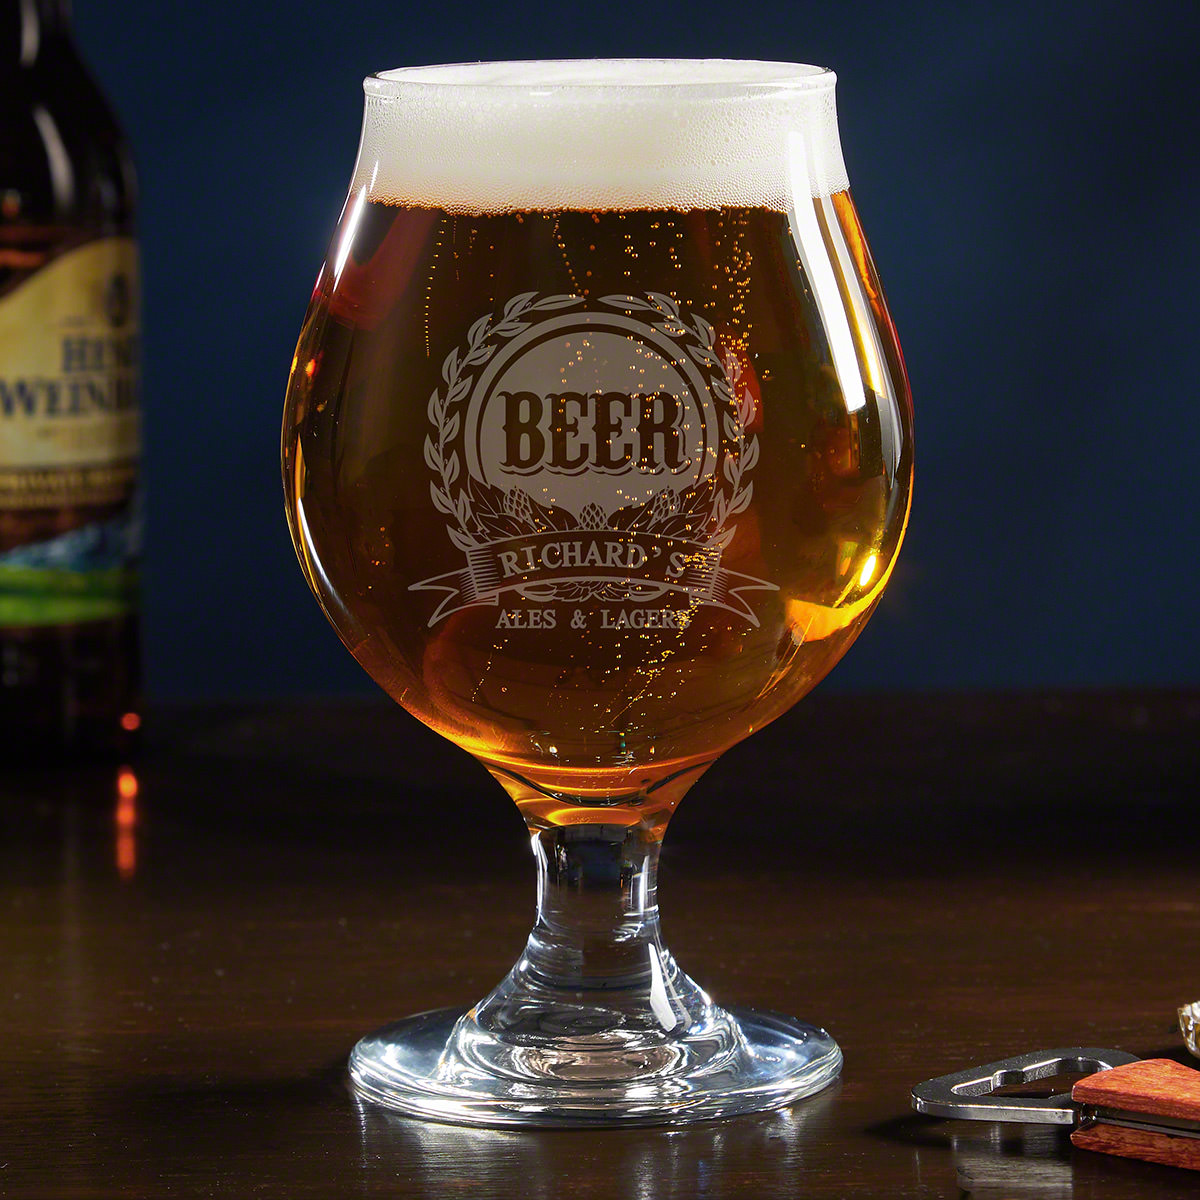 Mark-of-Excellence-Snifter-Beer-Glass